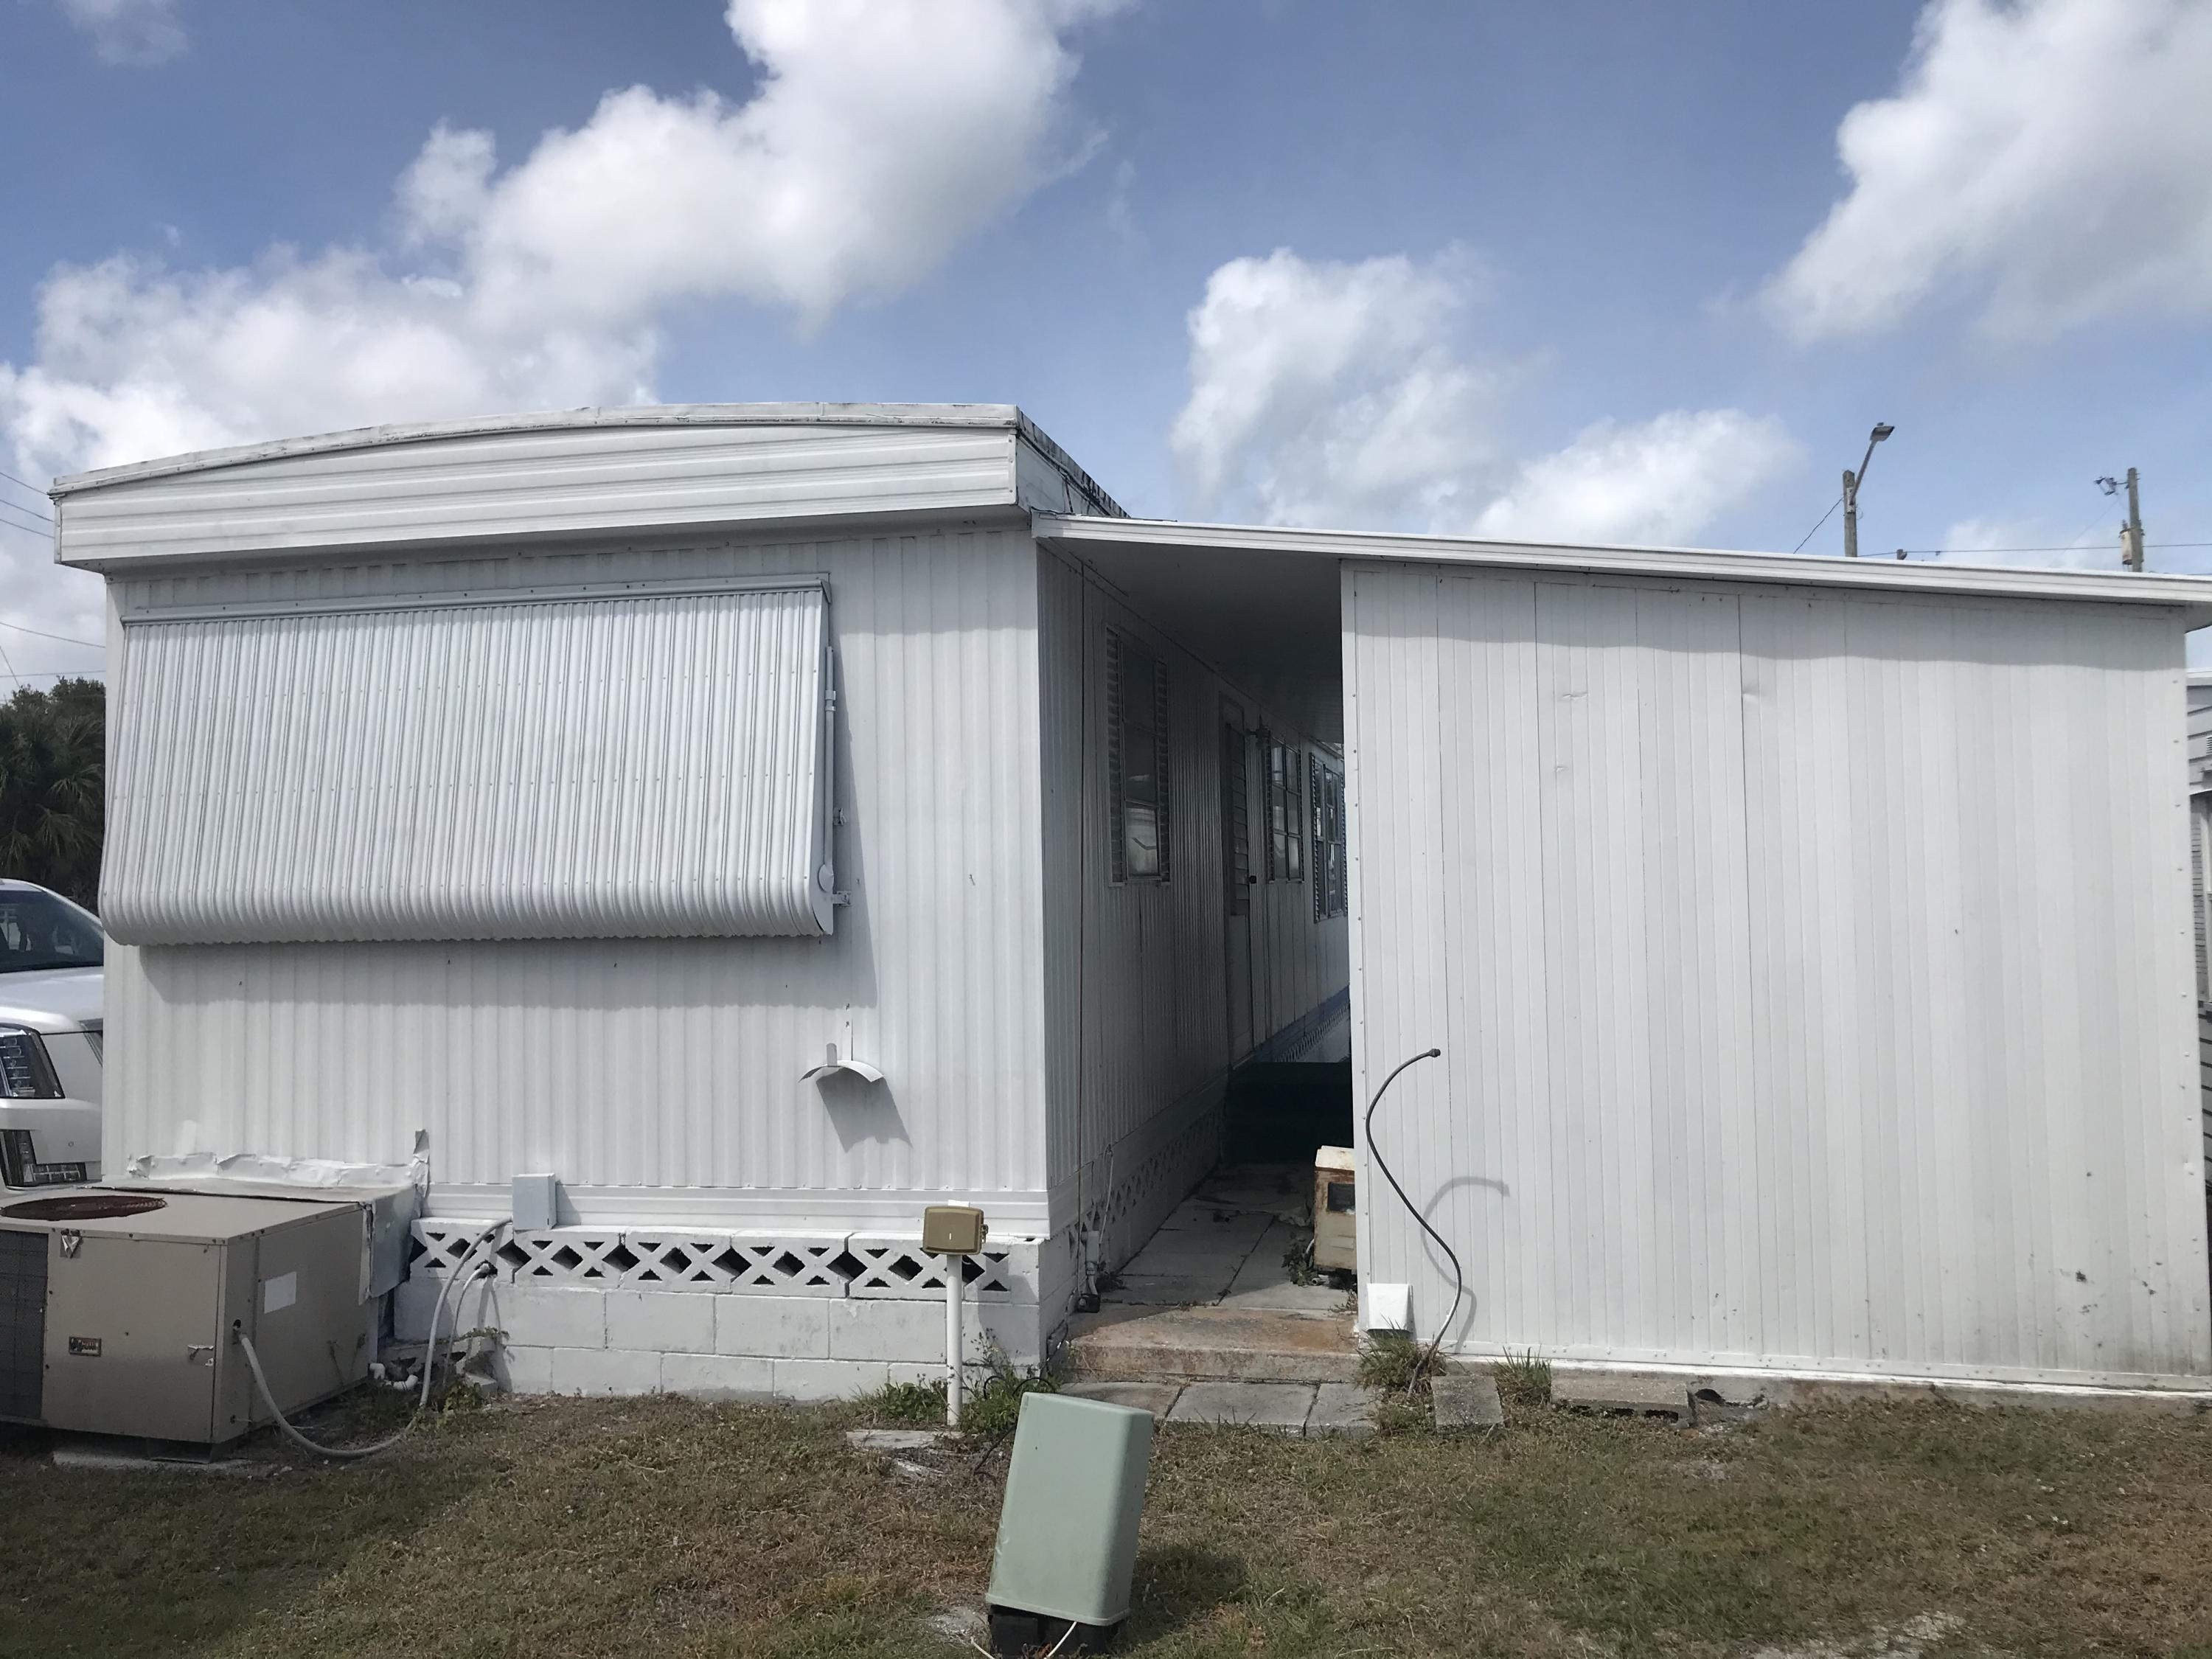 2023 Saint Lucie Boulevard, Fort Pierce, FL 34946